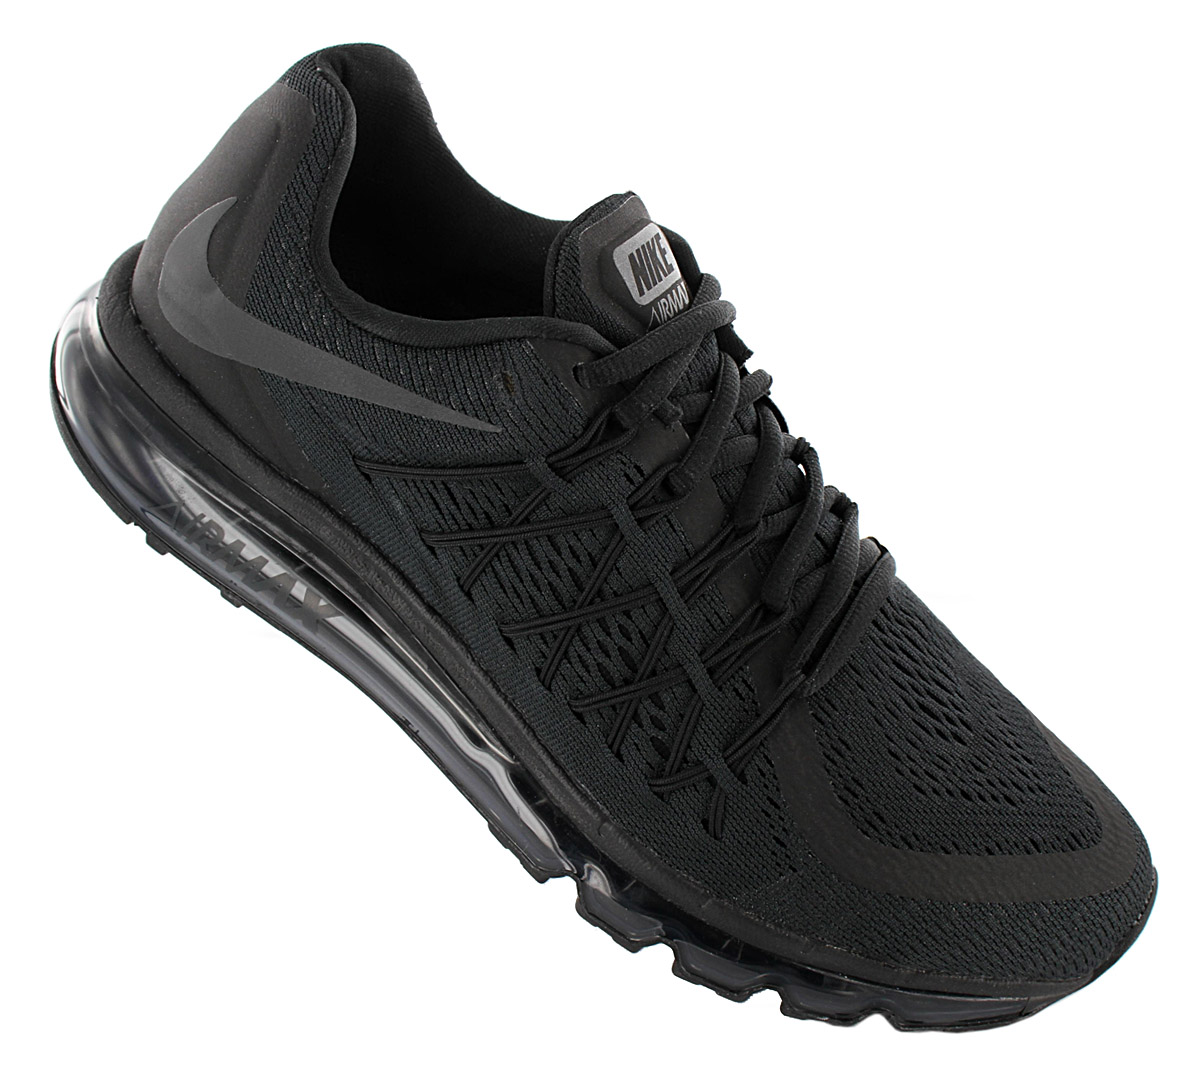 Details about Nike Air Max 2015 Mens Trainer BQ7548 002 Black Shoes Sneakers Sports Shoe show original title